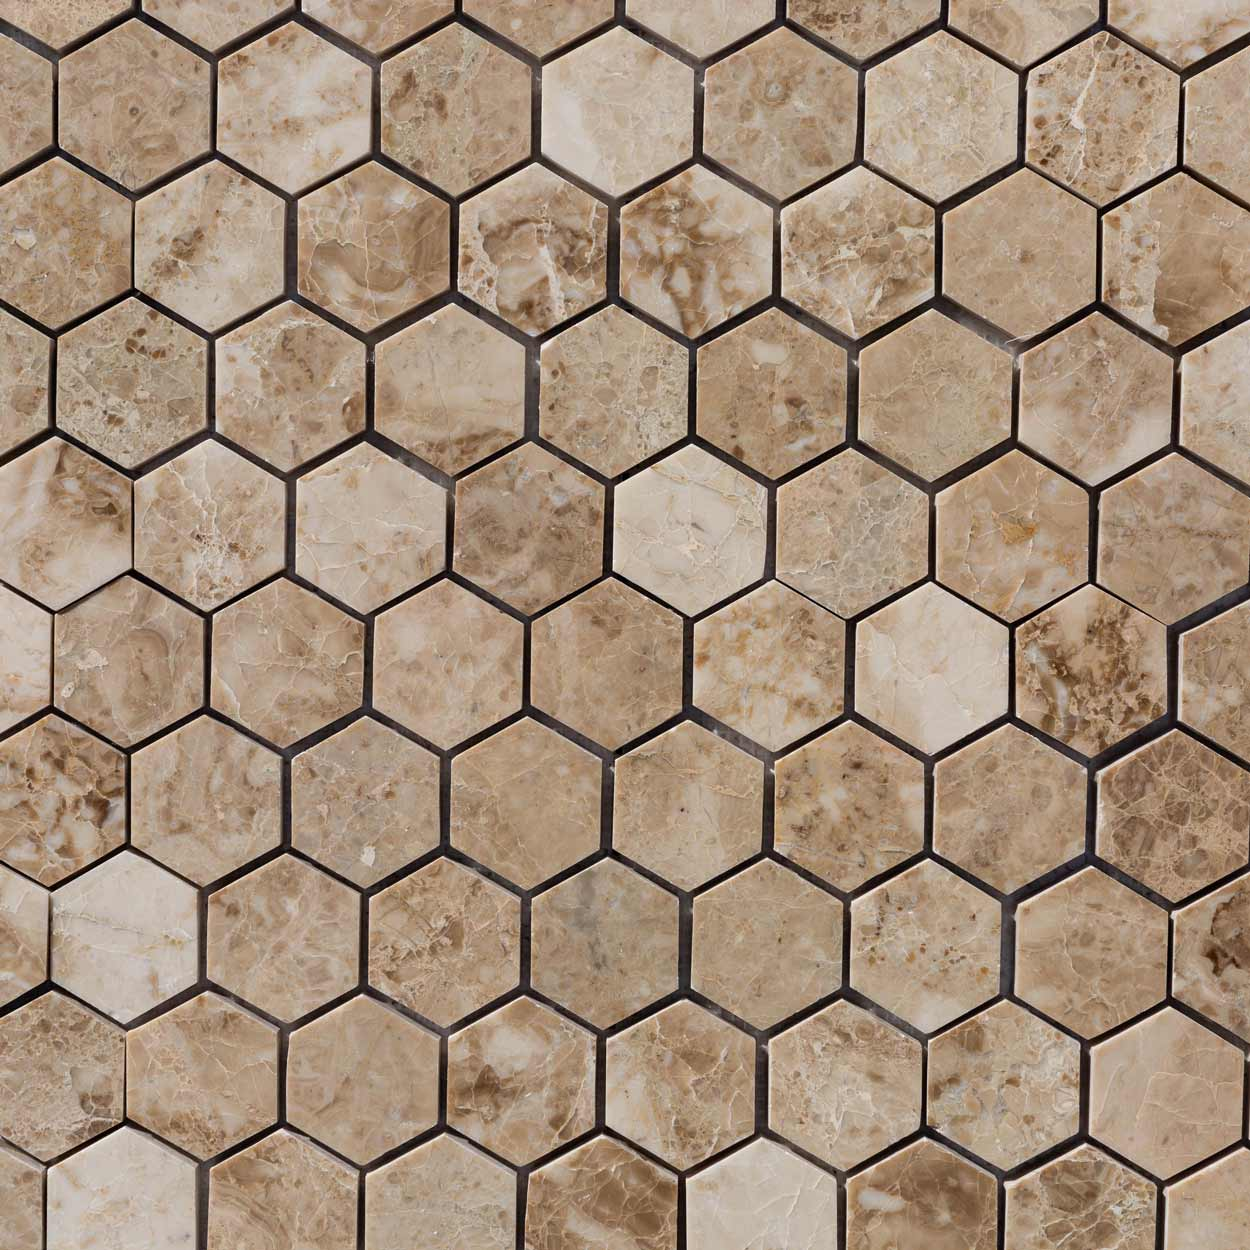 20020069-cappuccino-marble-mosaics-polished-2-hexagon-top-close-view-www.mayausatile